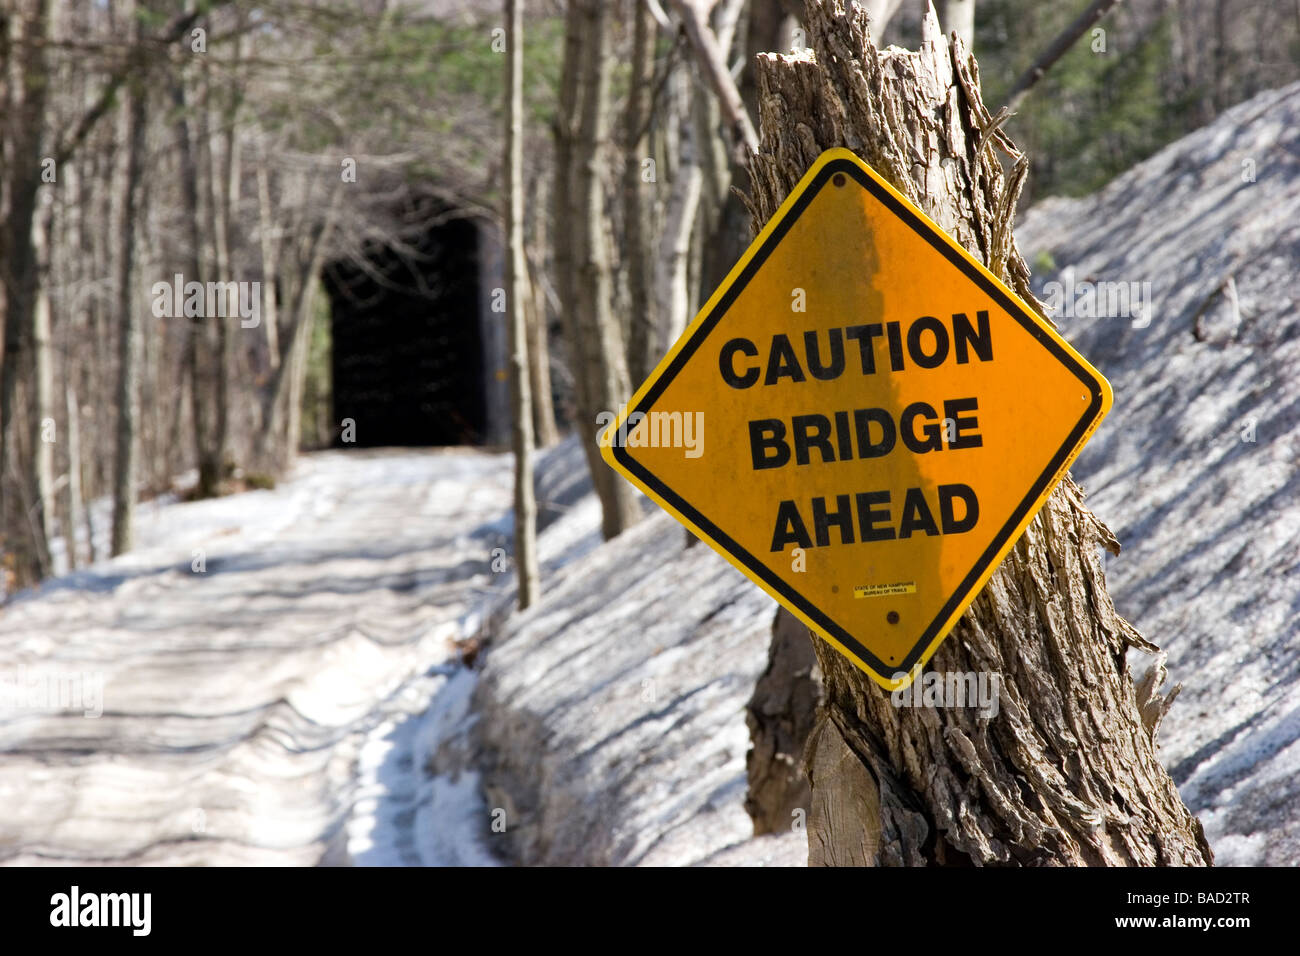 'Caution Bridge Ahead' sign and covered train bridge - Stock Image